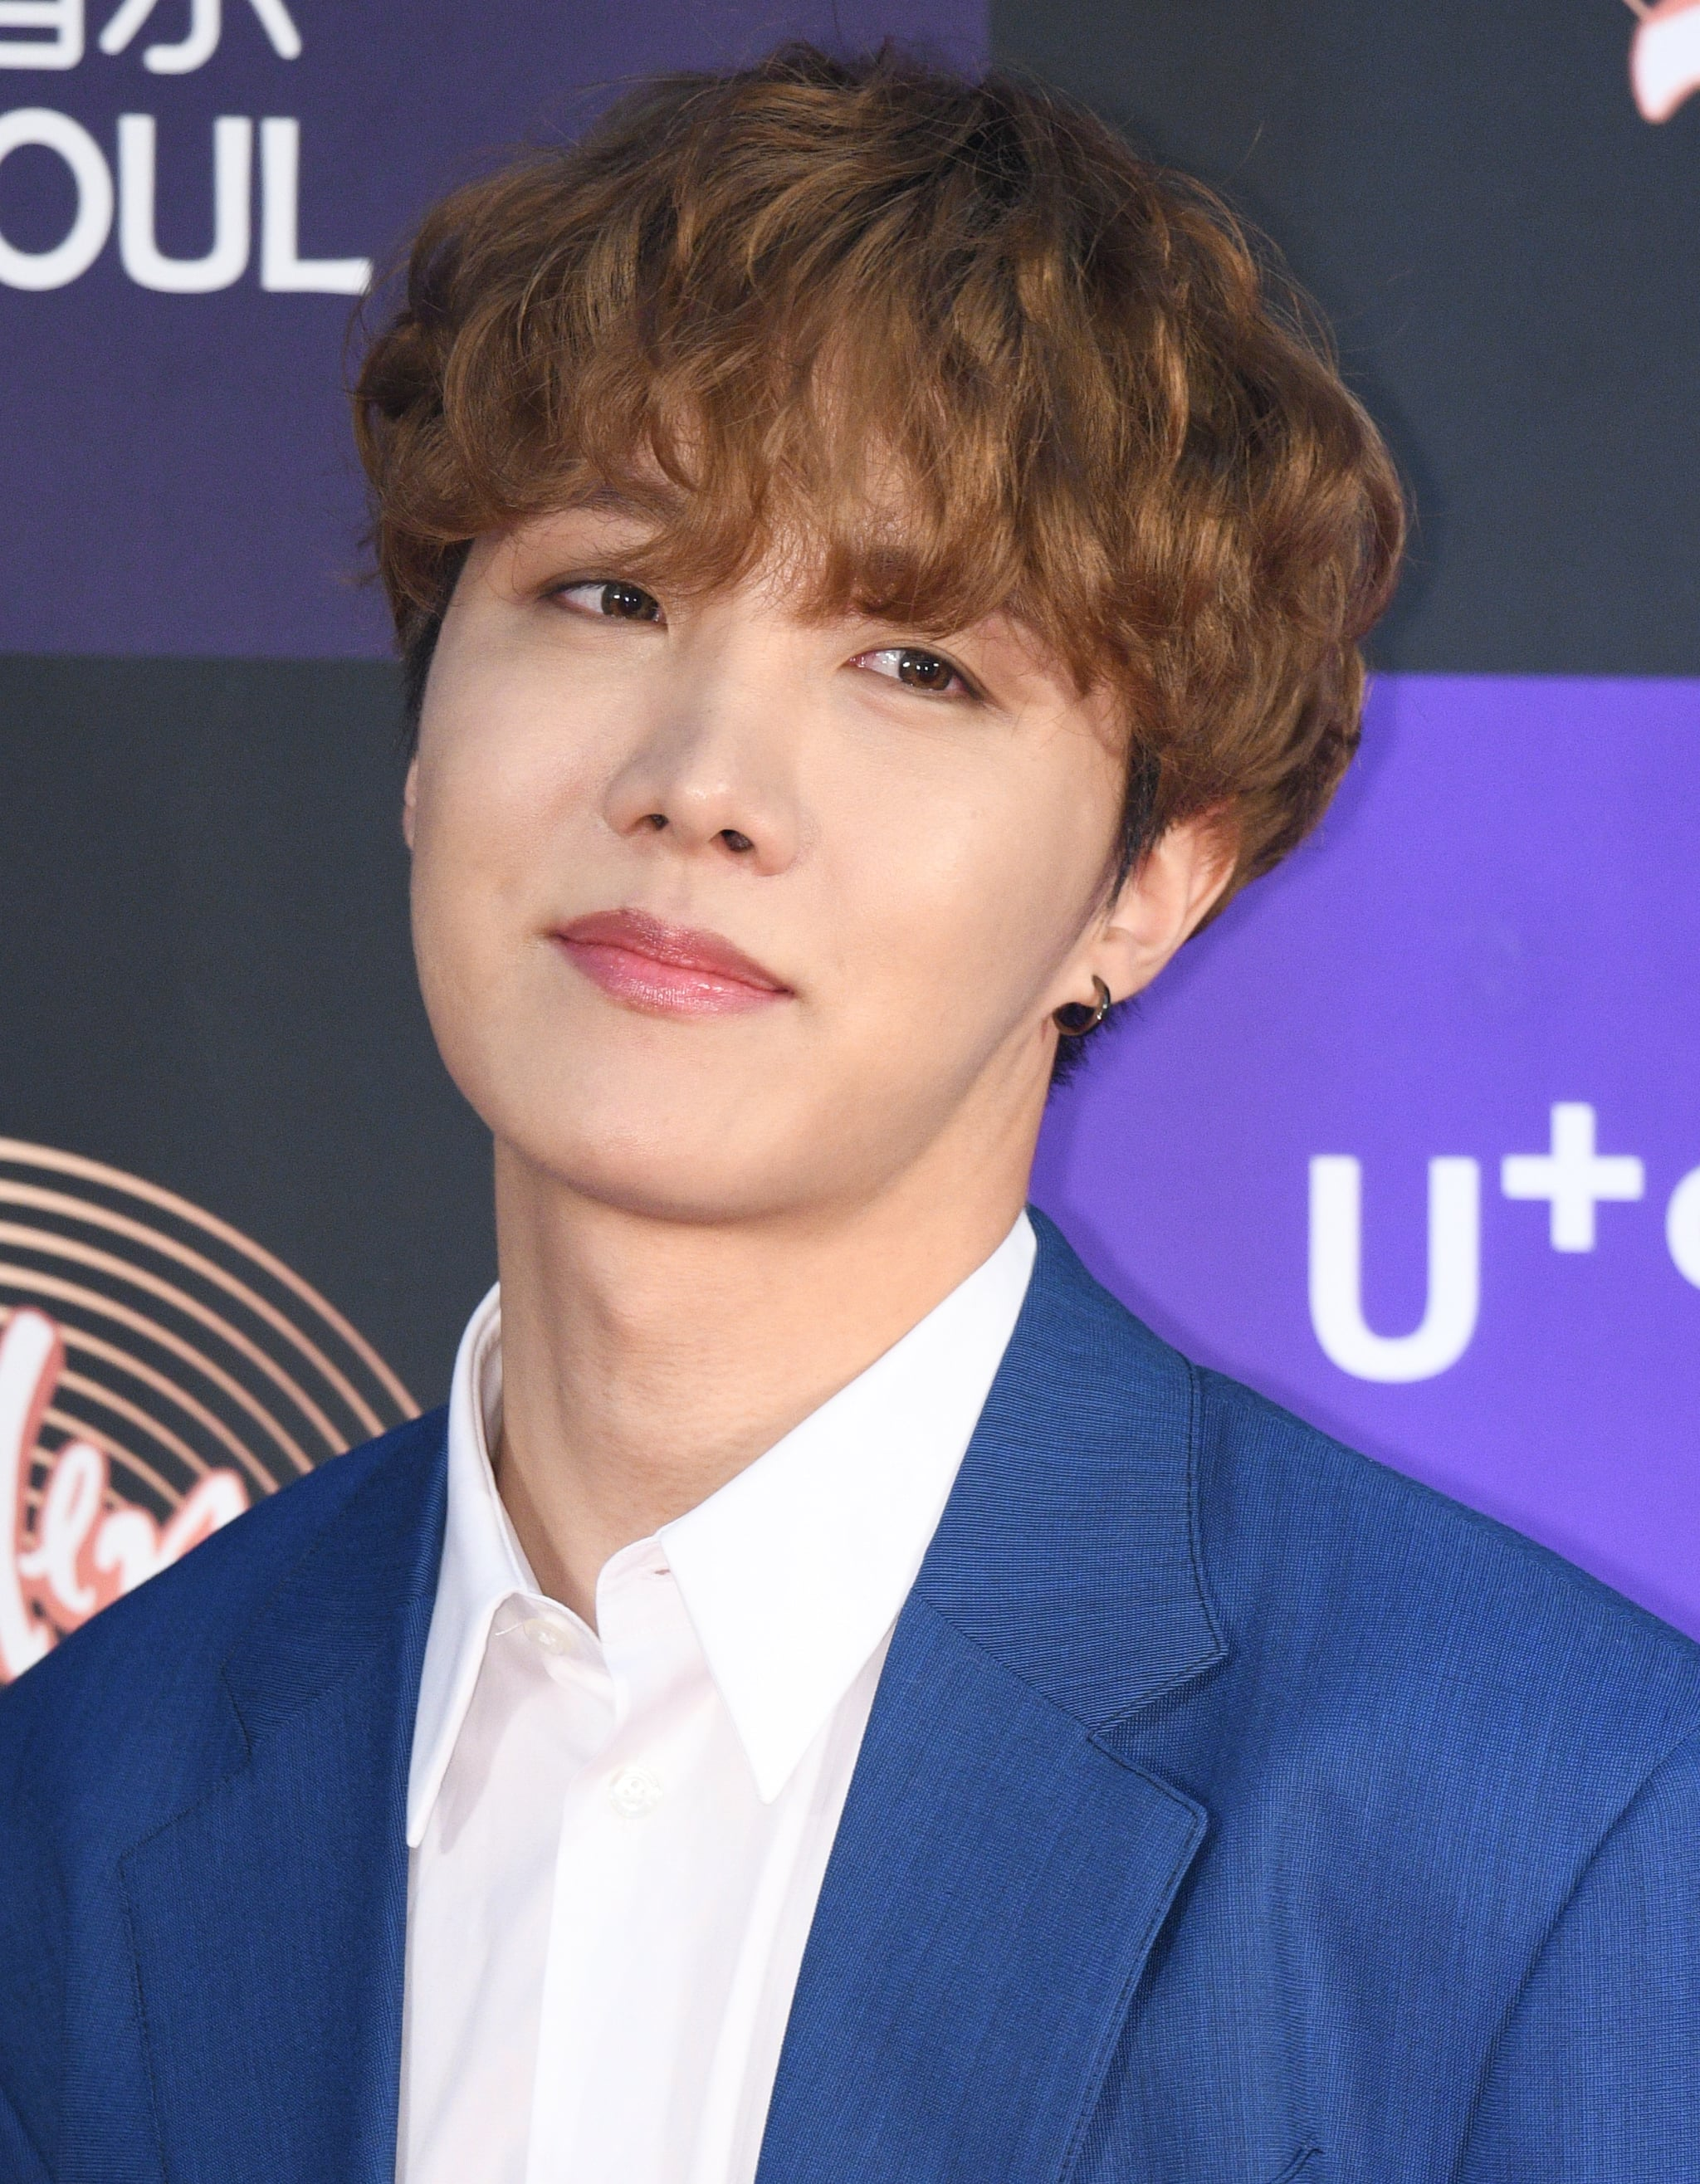 Who-Has-J-Hope-From-BTS-Dated